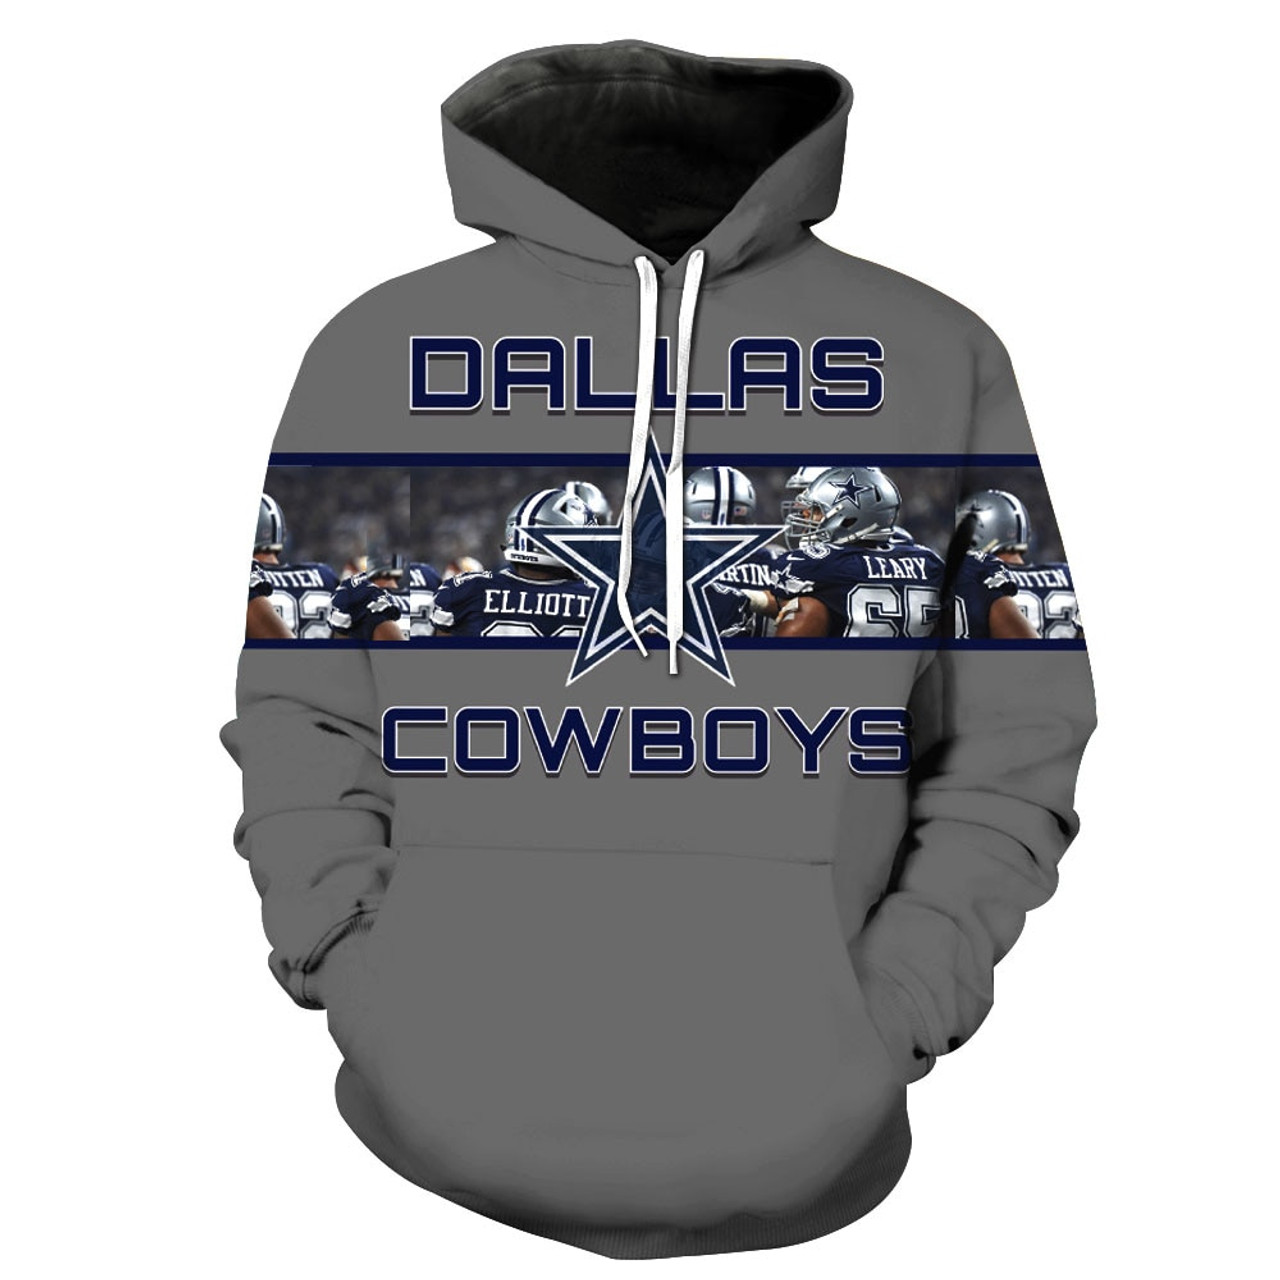 low priced bcdd4 c5022 **(OFFICIALLY-LICENSED-N.F.L.DALLAS-COWBOYS-PULLOVER-POCKET-HOODIES/OFFICIAL-3D-GRAPHIC-PRINTED-COWBOYS-LOGOS  & ...